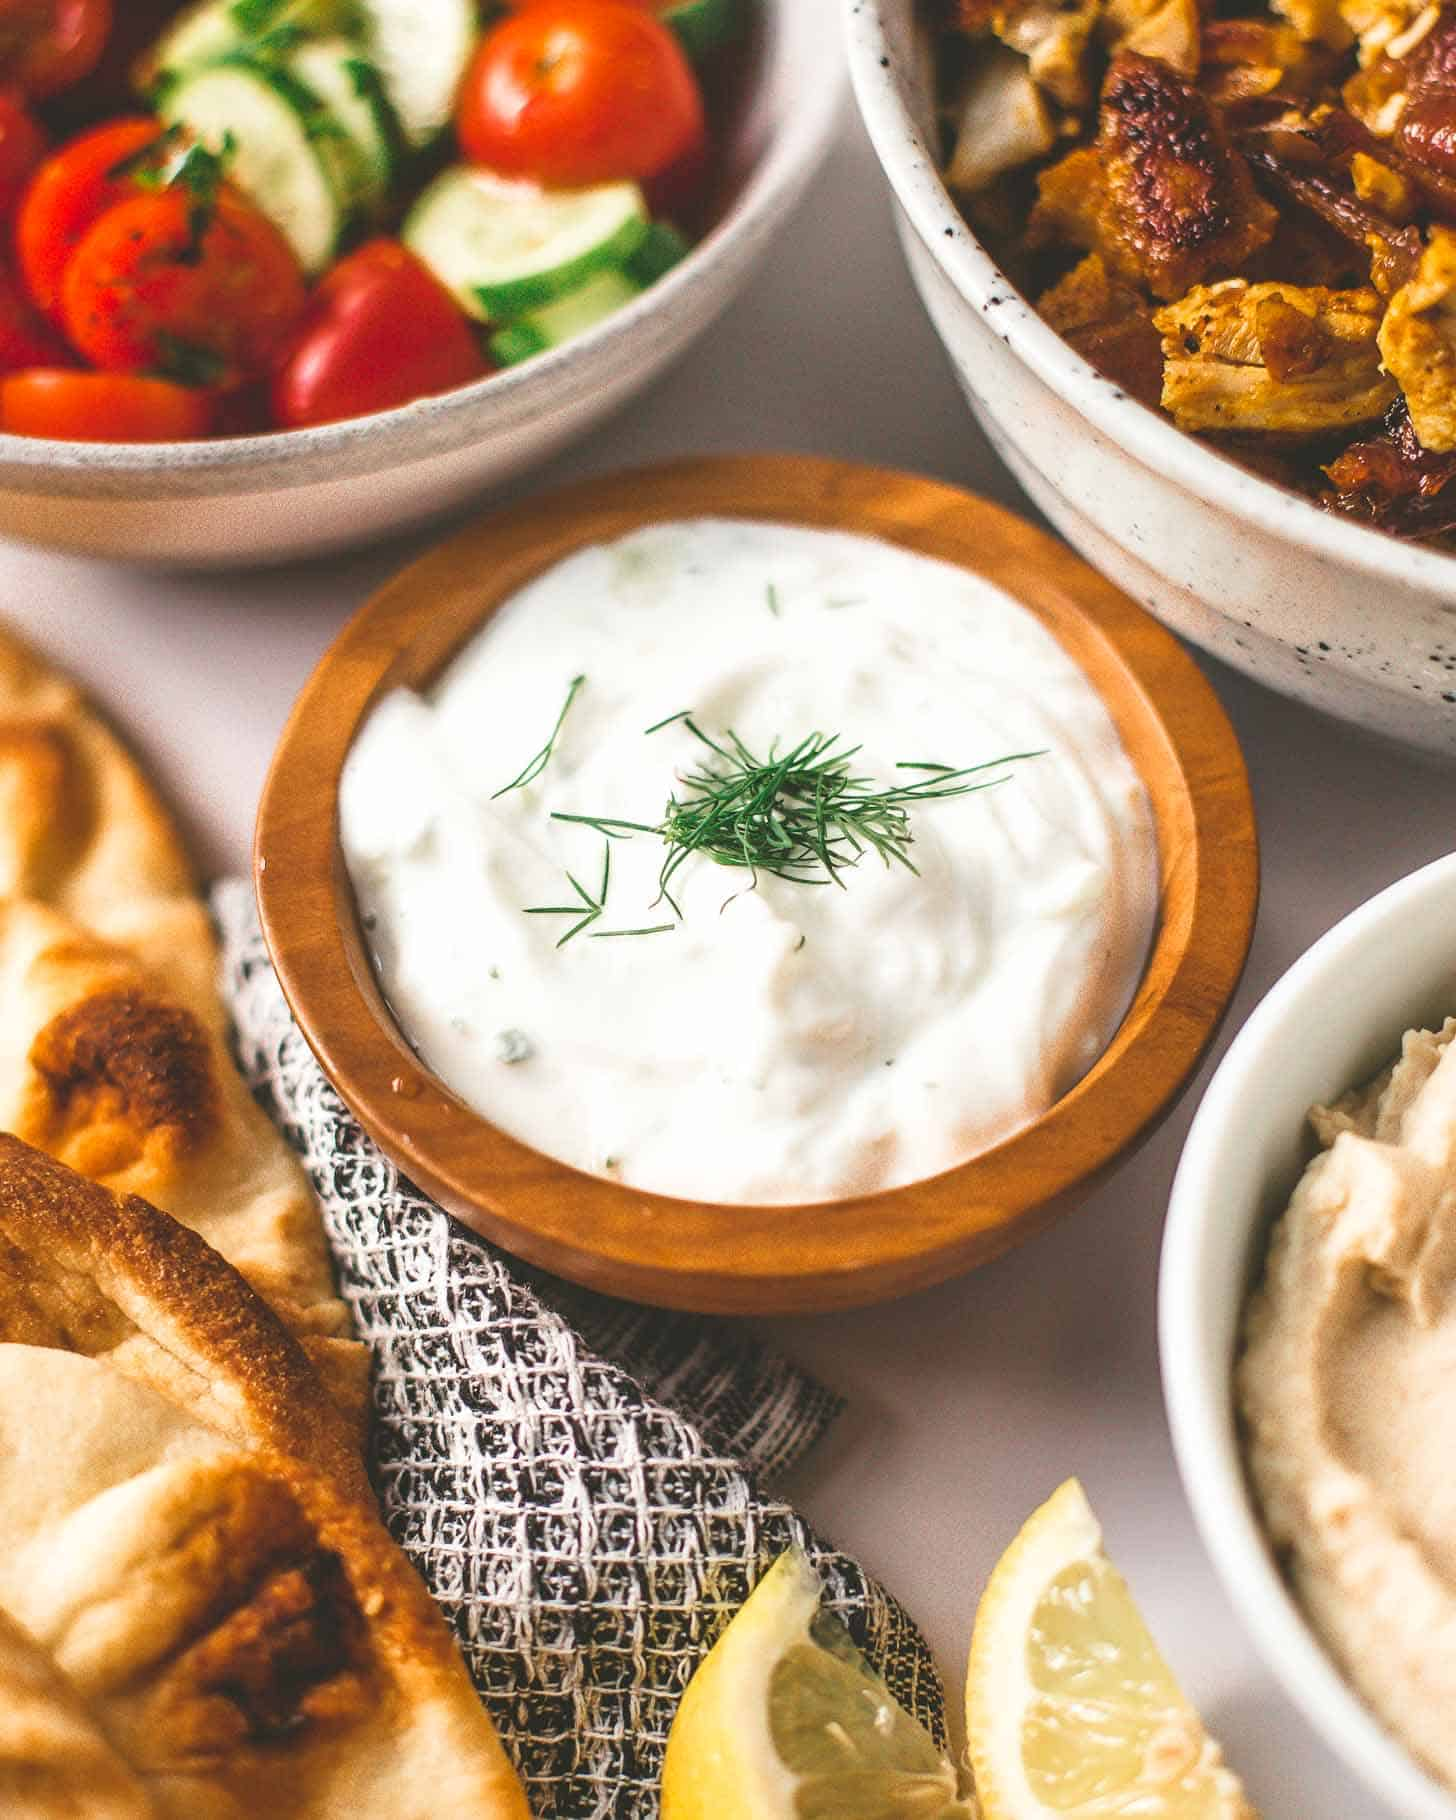 tzatziki sauce in a small wooden bowl